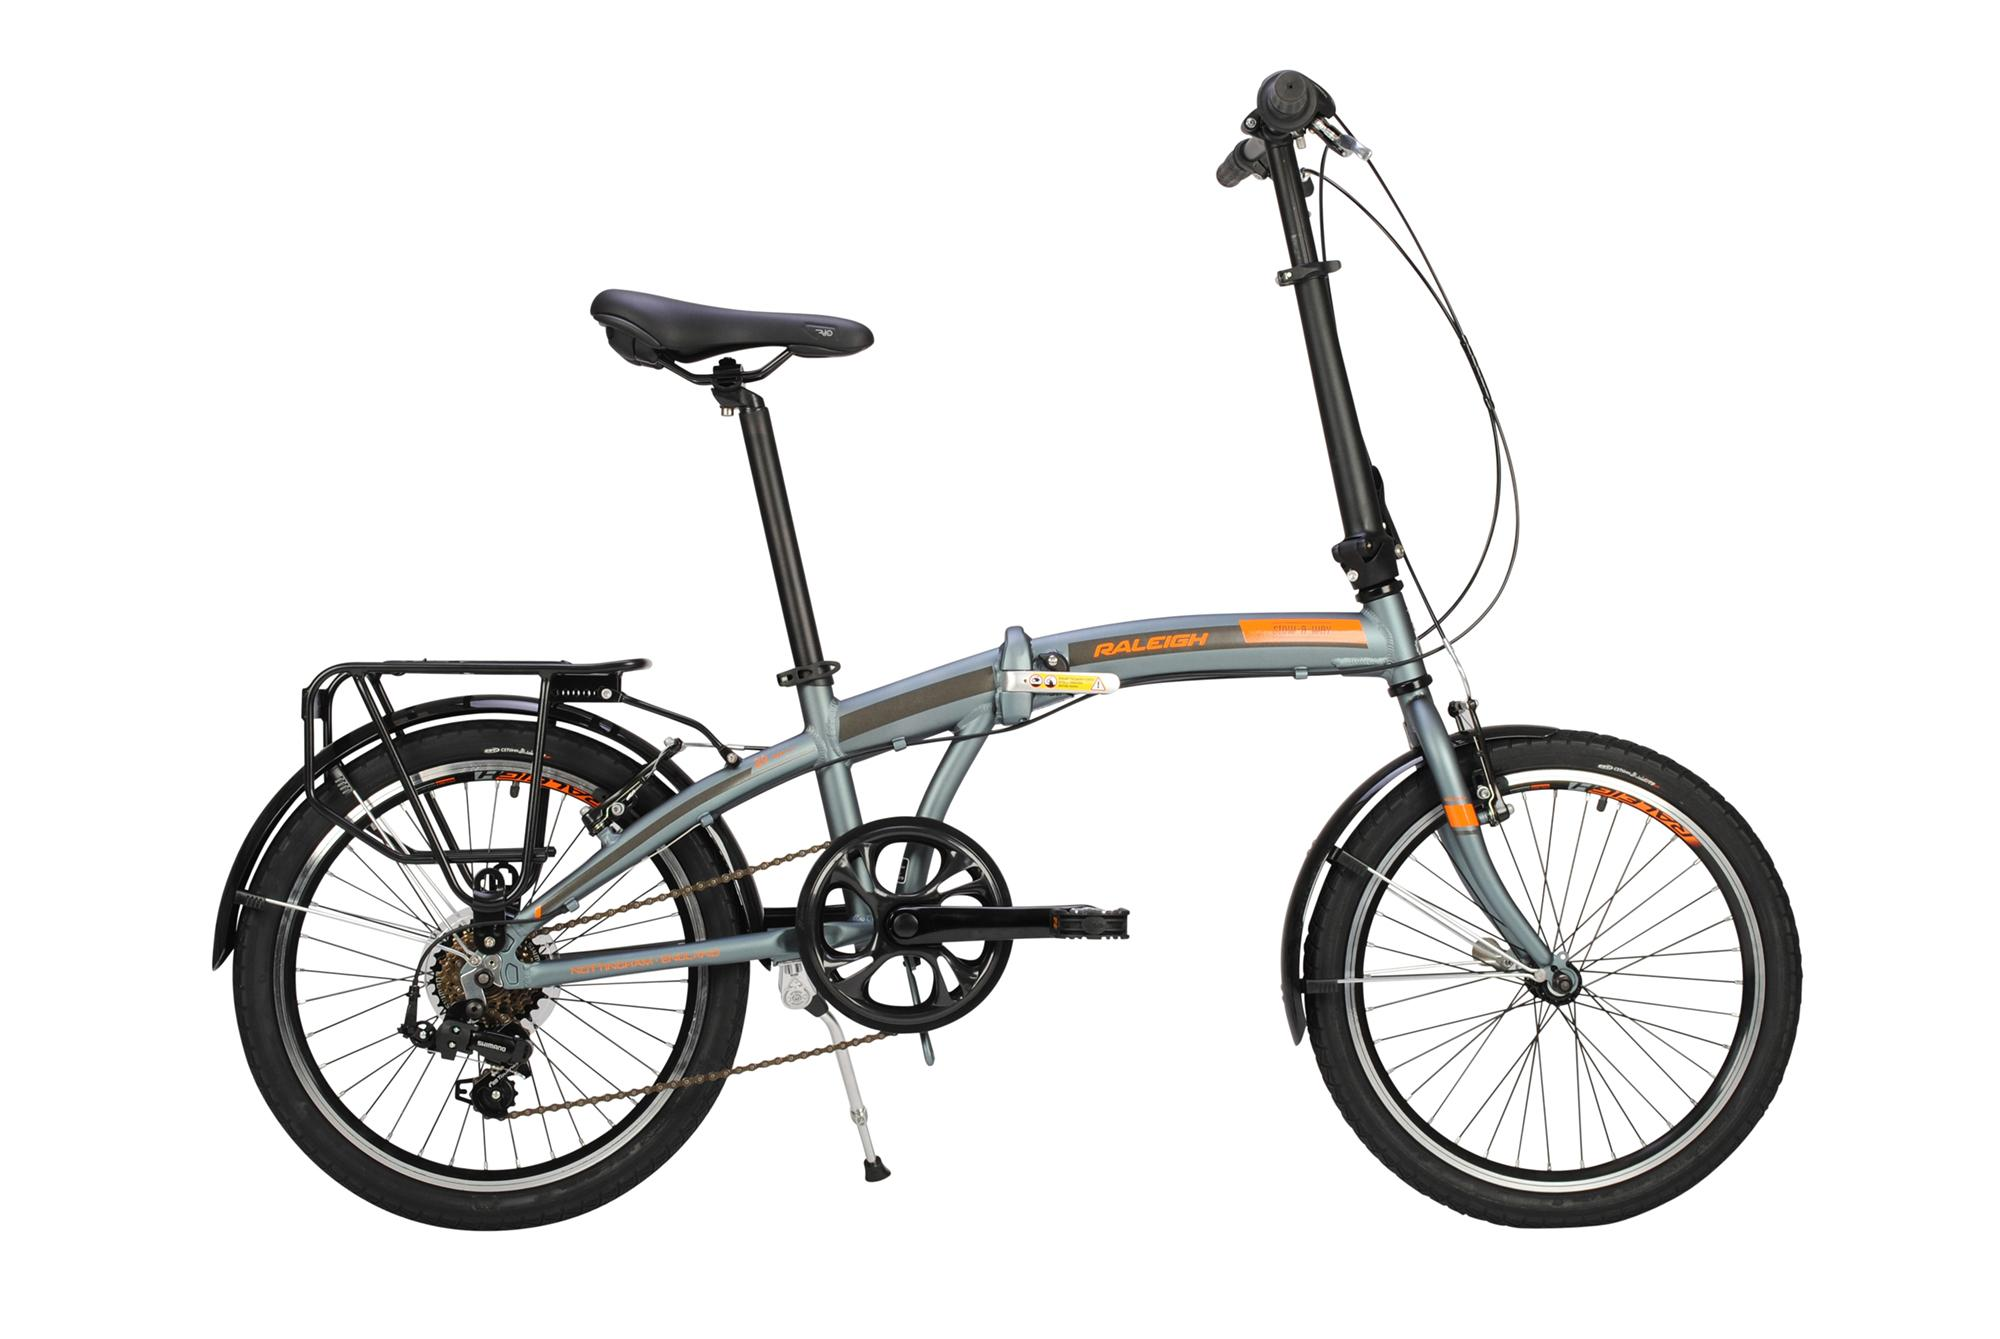 Raleigh Stowaway folding bike